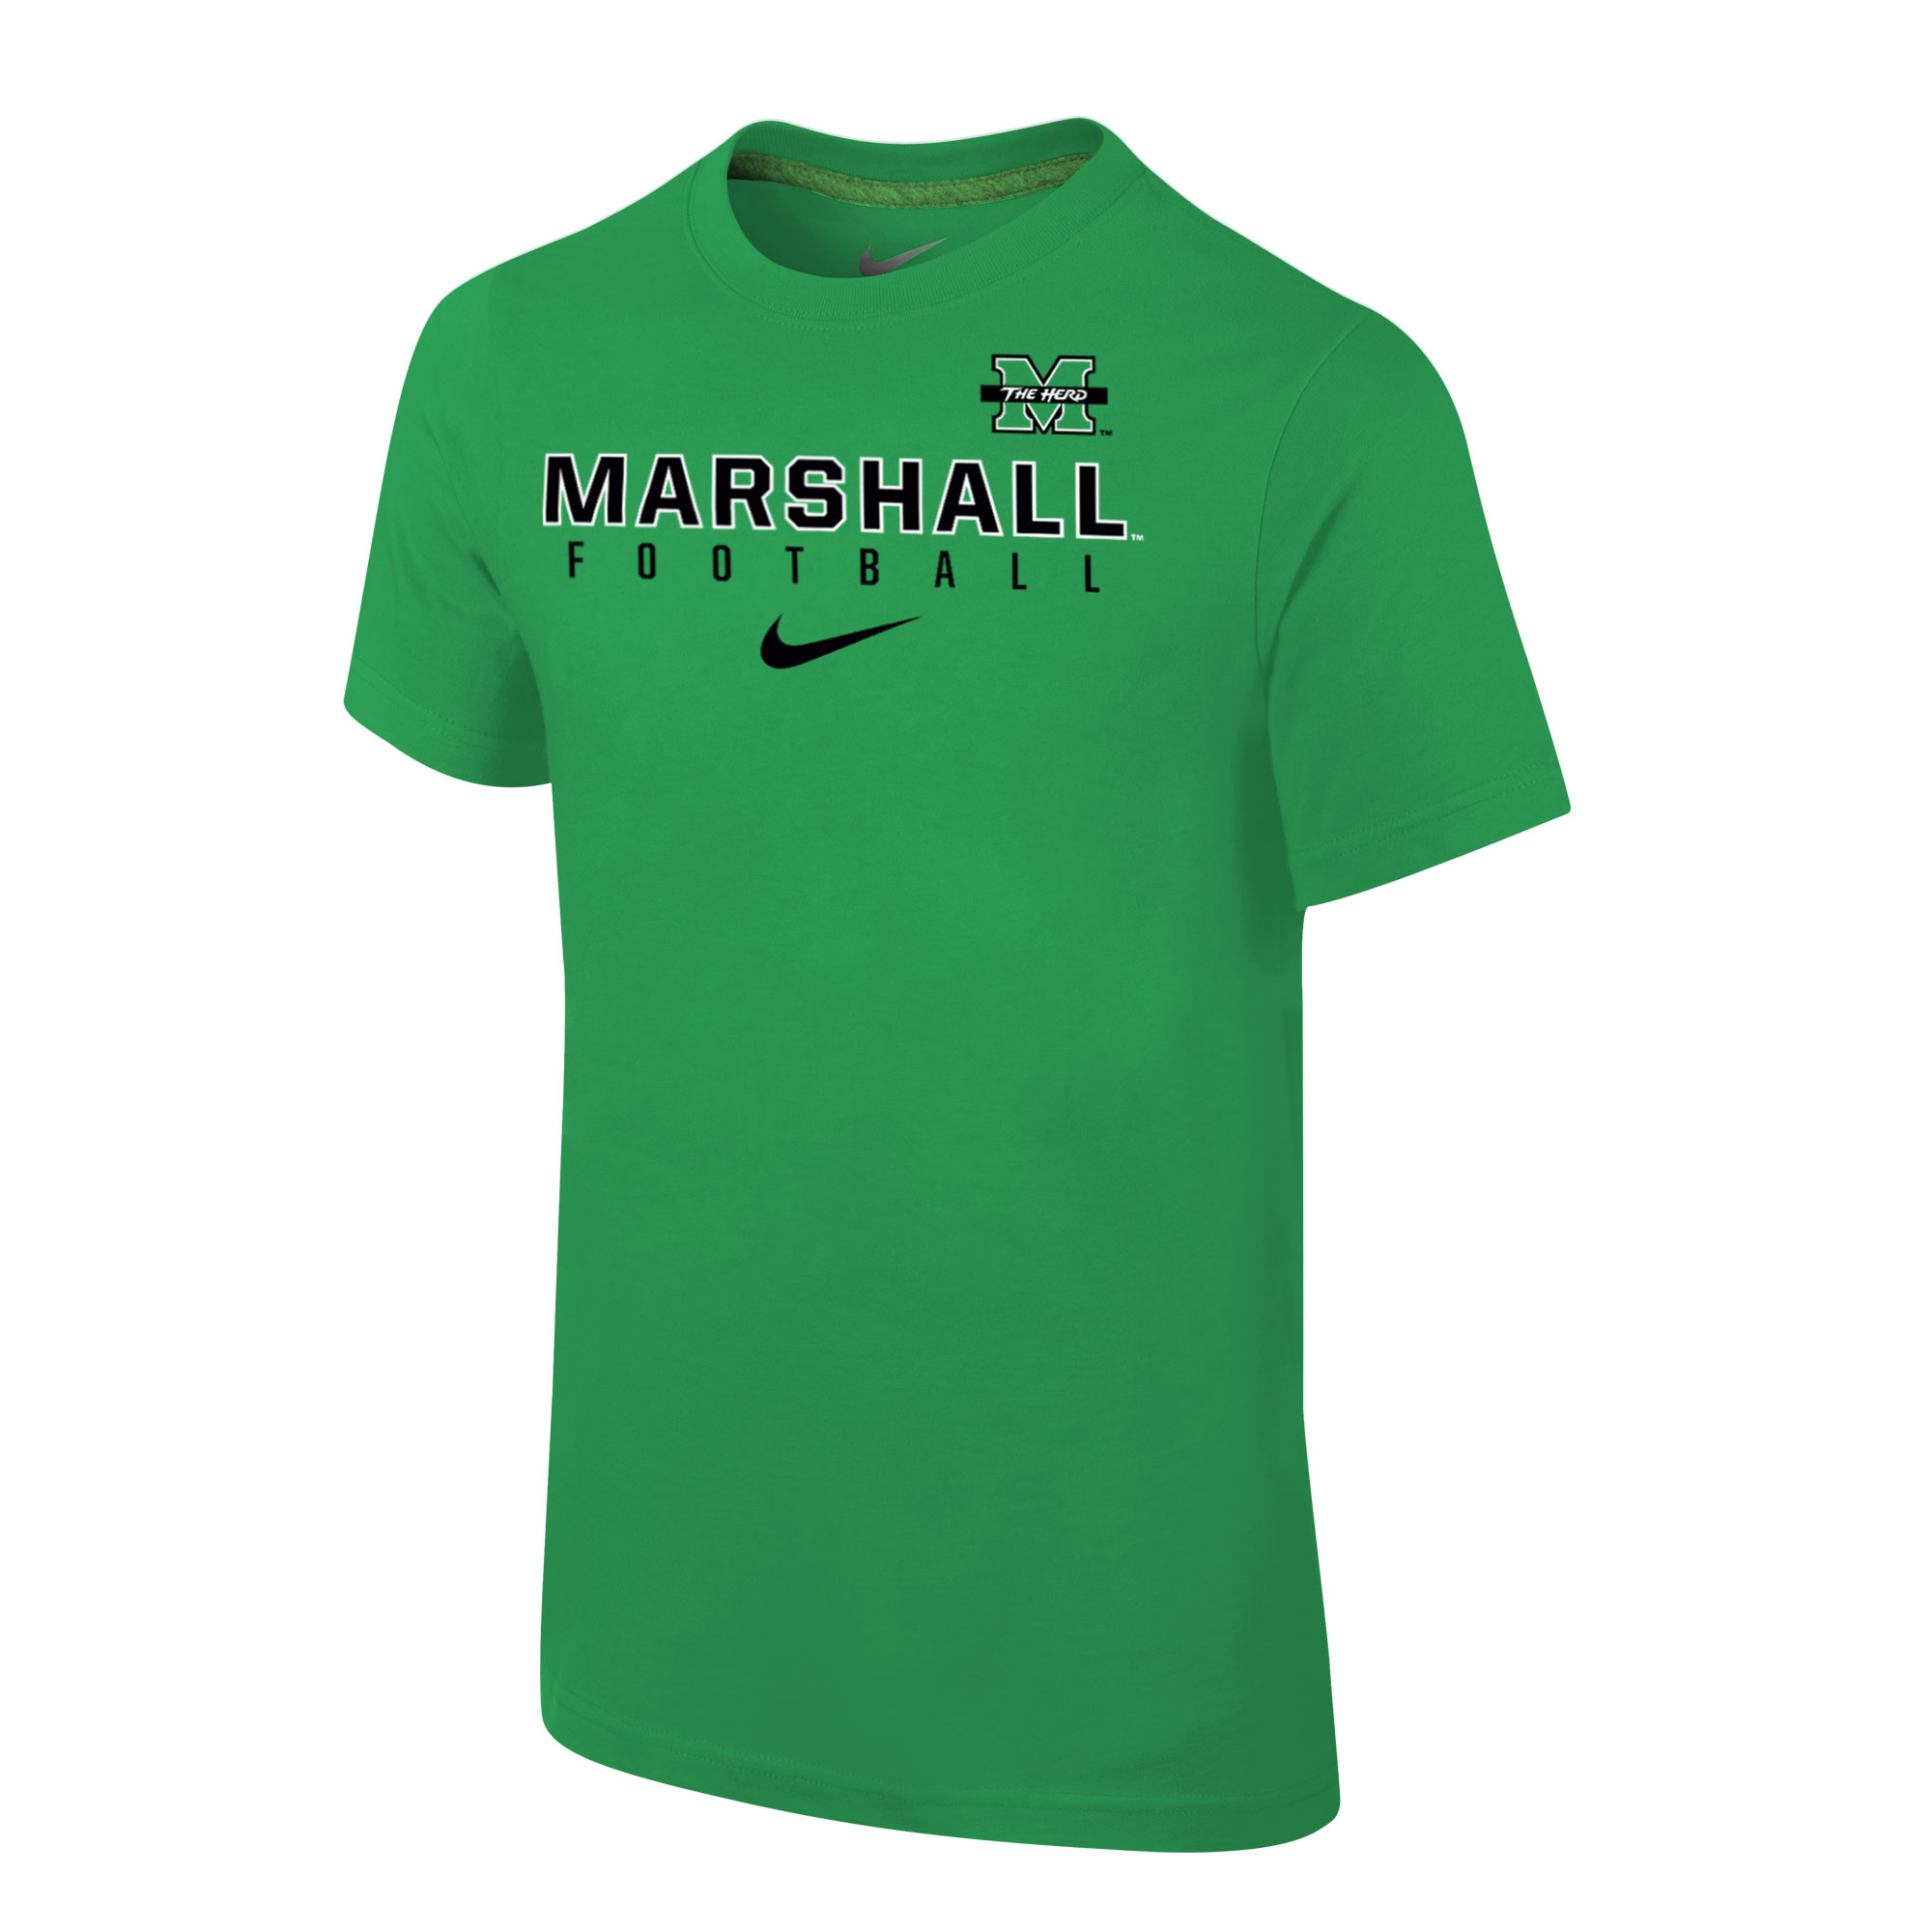 Nike <br> Core T <br> S-XL <br> $24.99